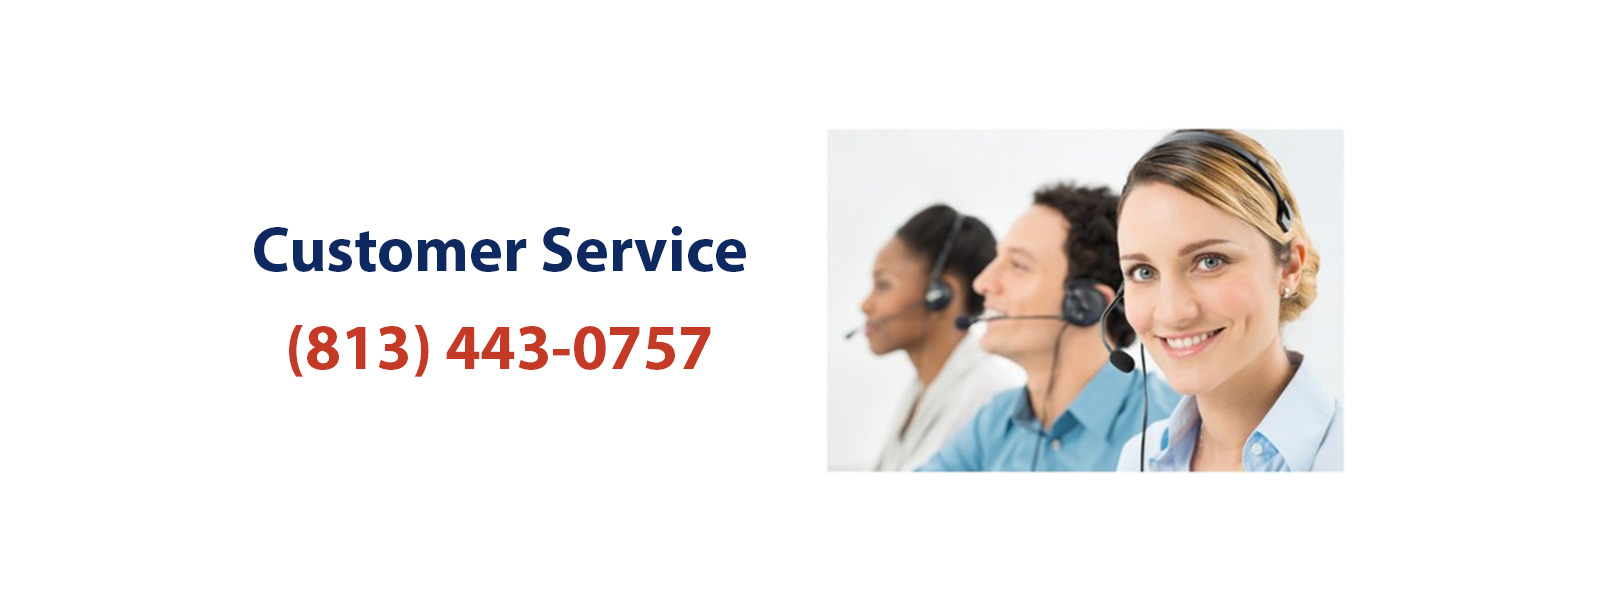 iGas USA Customer Service Contact  Number